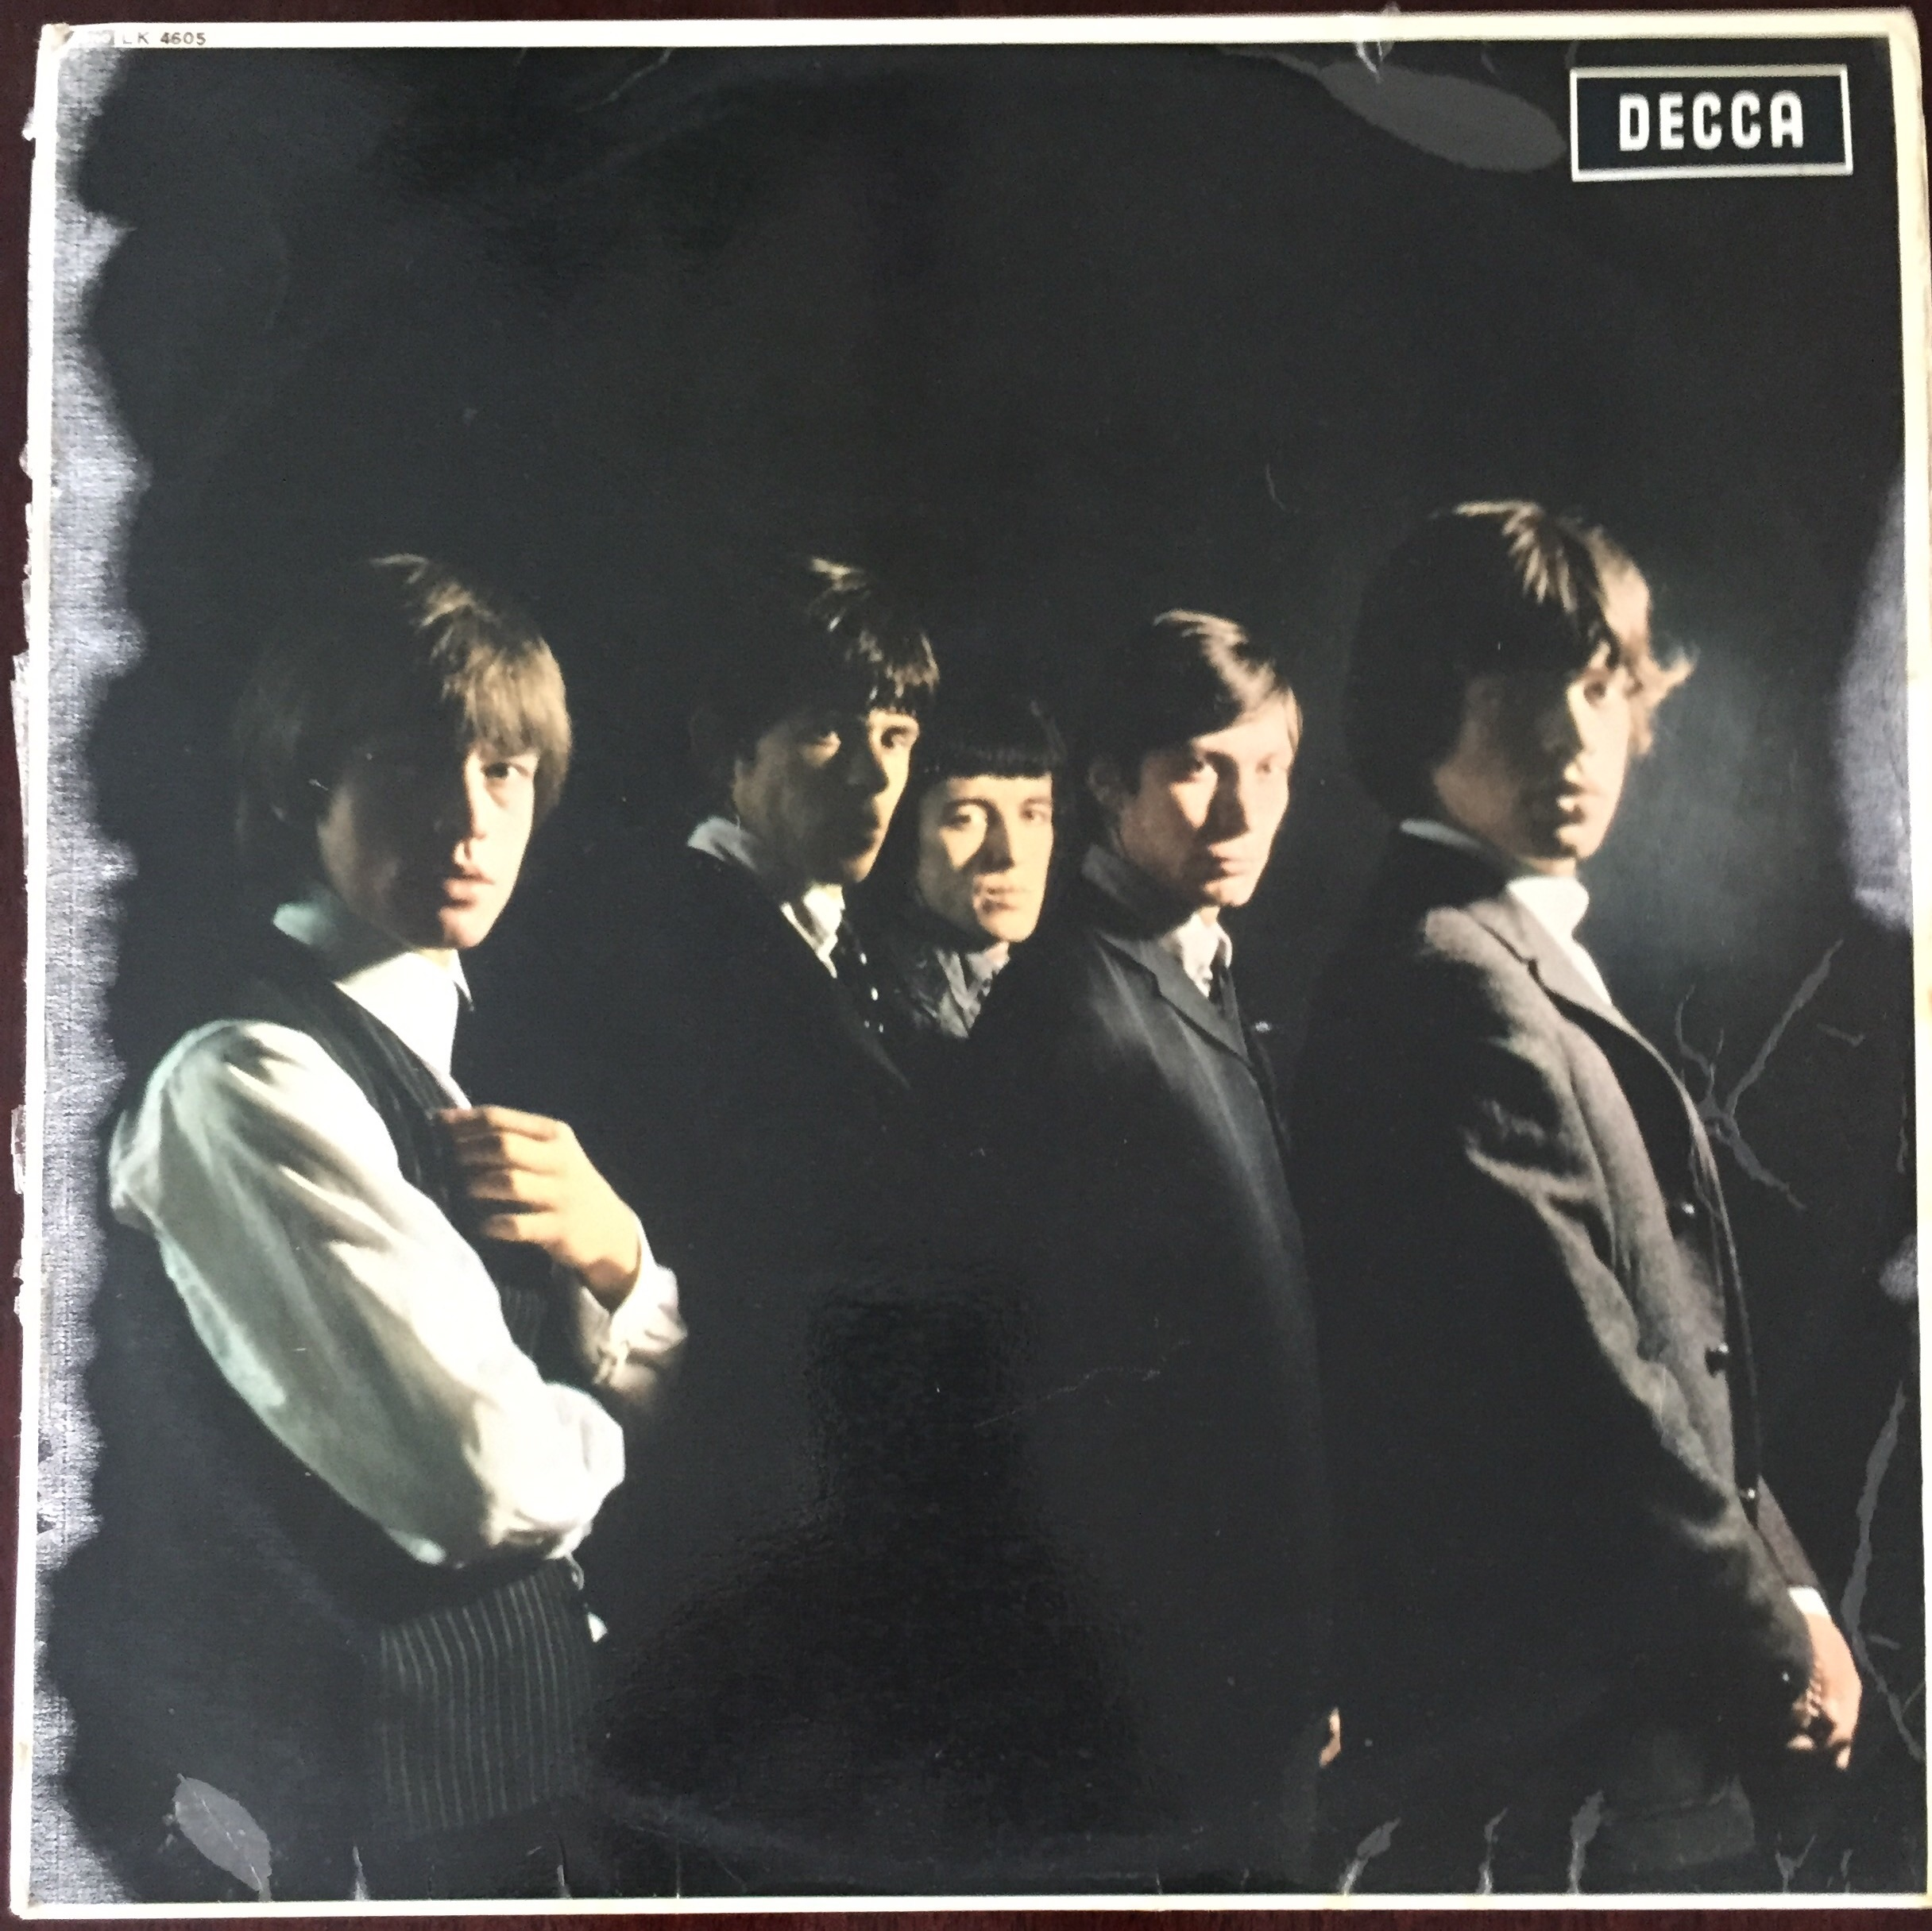 Rolling stones i wanna be your man single